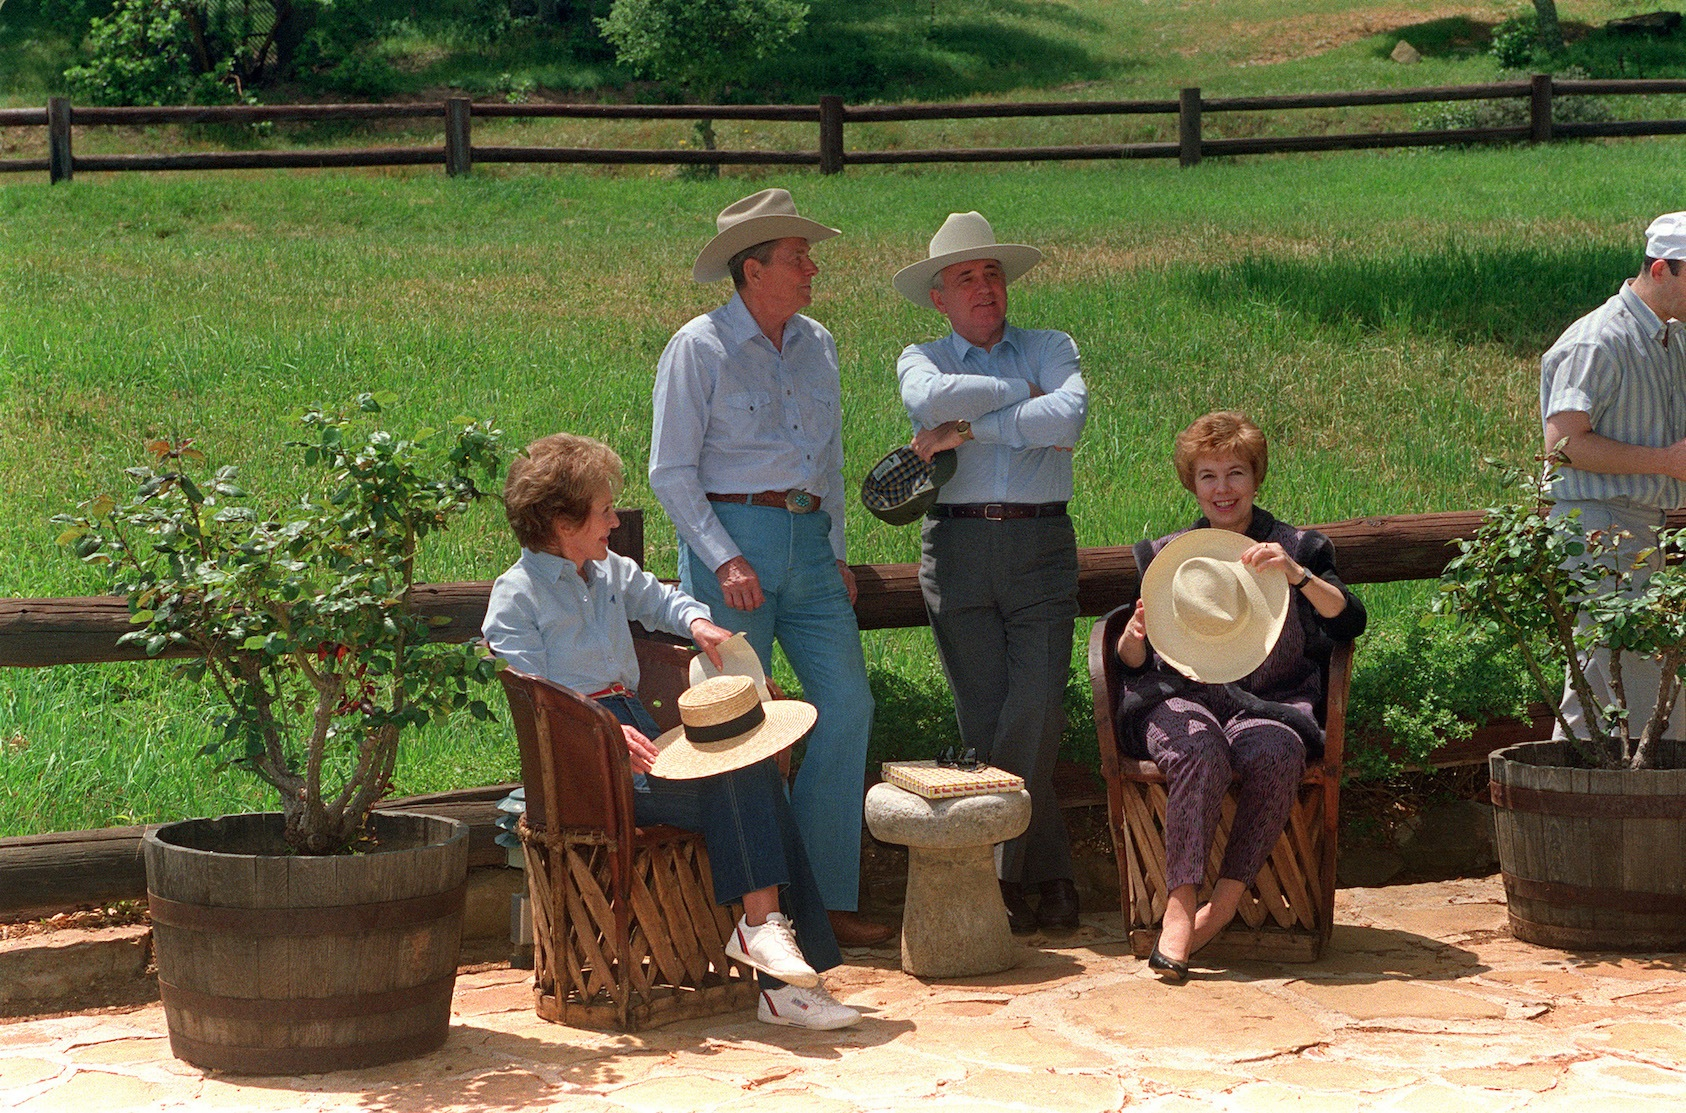 Ronald reagan at his ranch in Santa Barbara